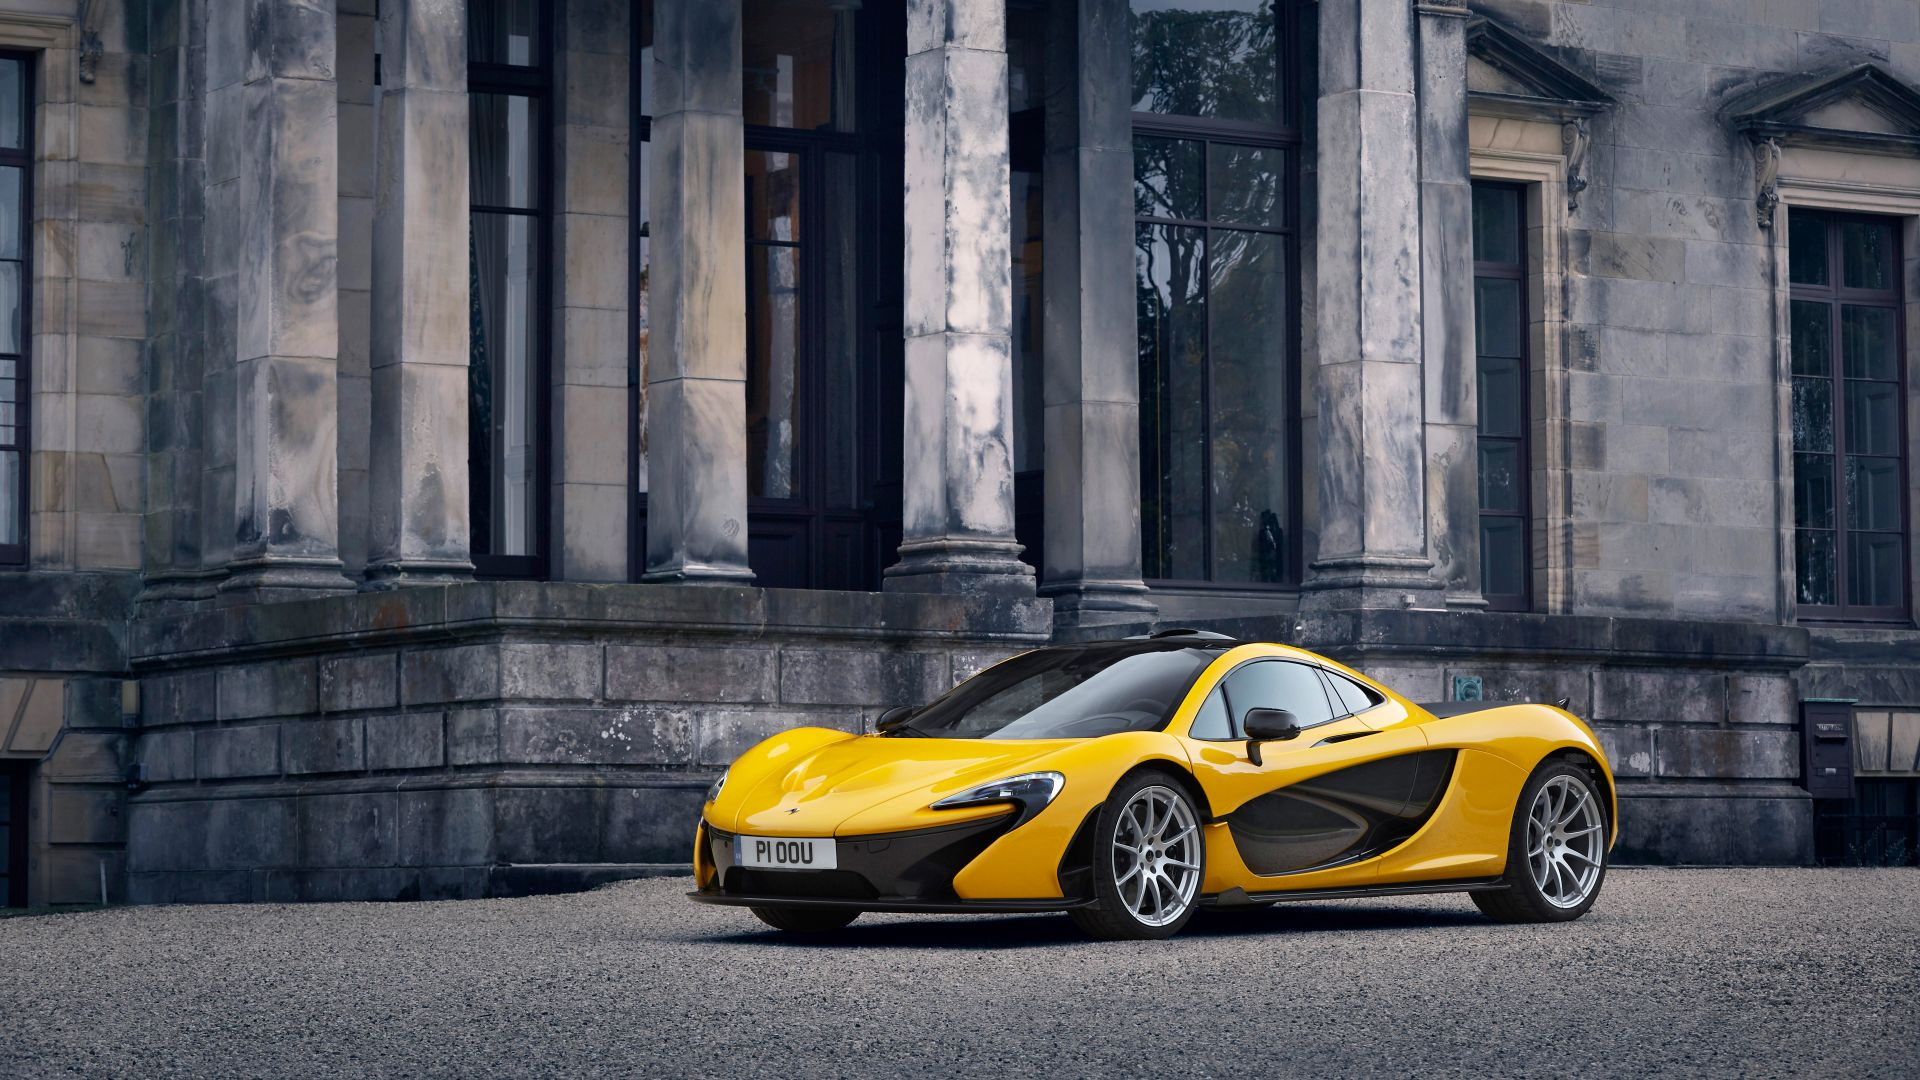 Not too long ago, regular car reviews, always known for. Desktop Wallpaper Mclaren P1 5th Anniversary Sports Car 5k 2017 Hd Image Picture Background 5d89f0